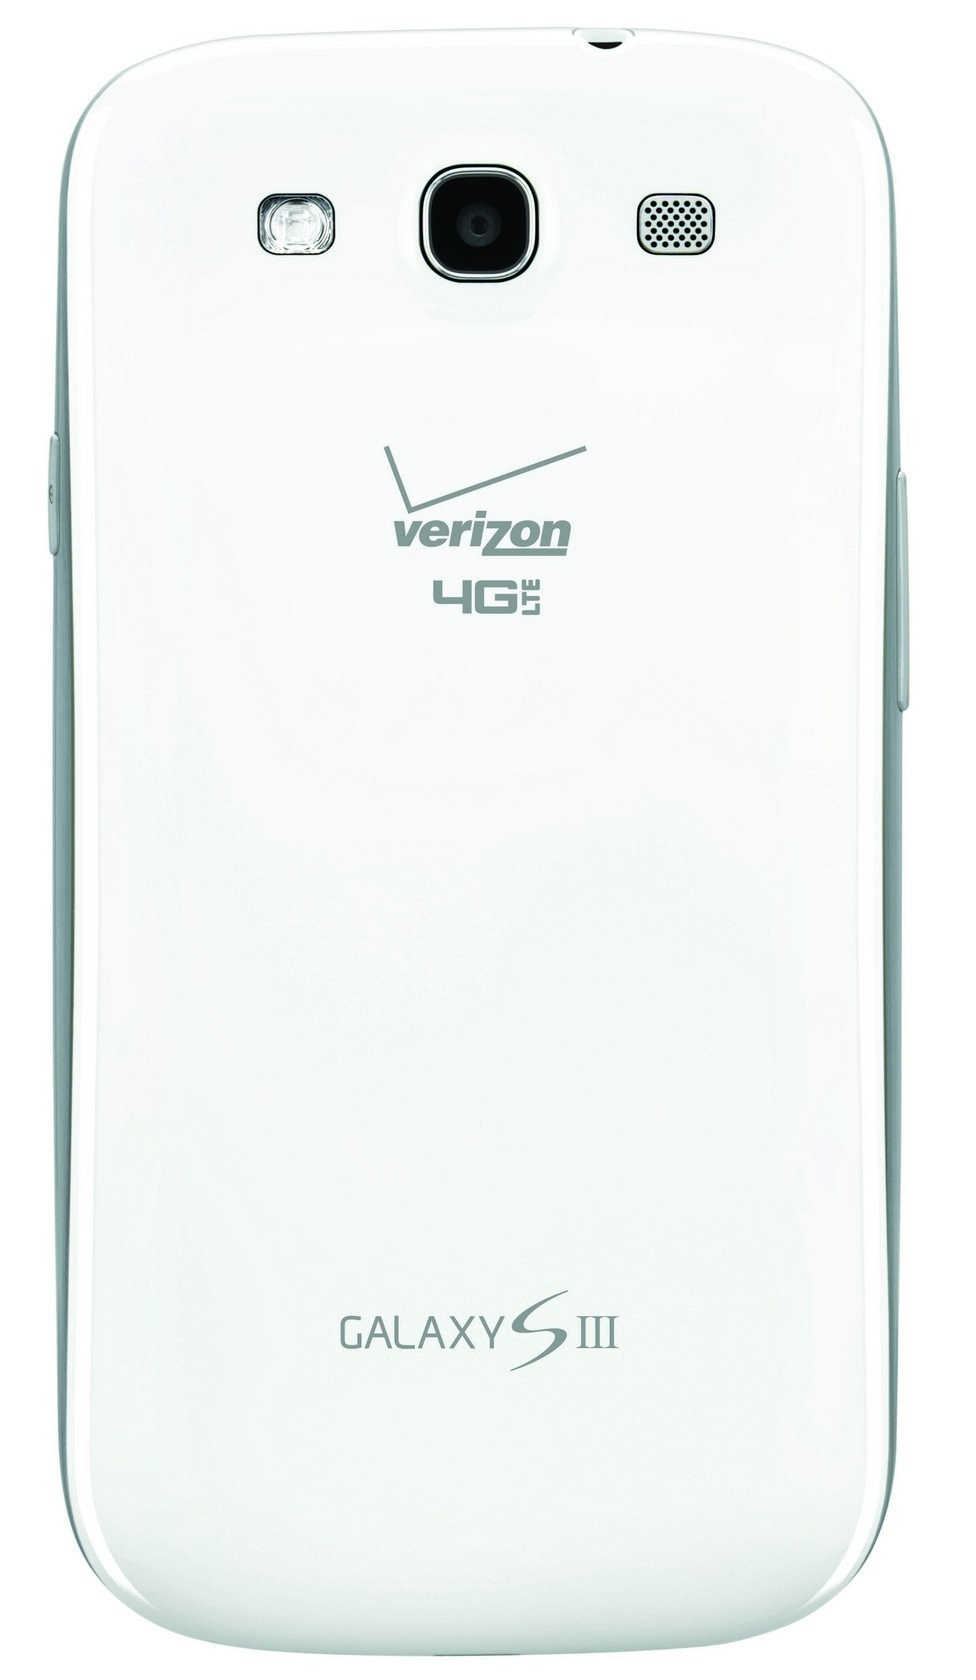 Verizon Announces Galaxy S III For $199 (16GB) and $249